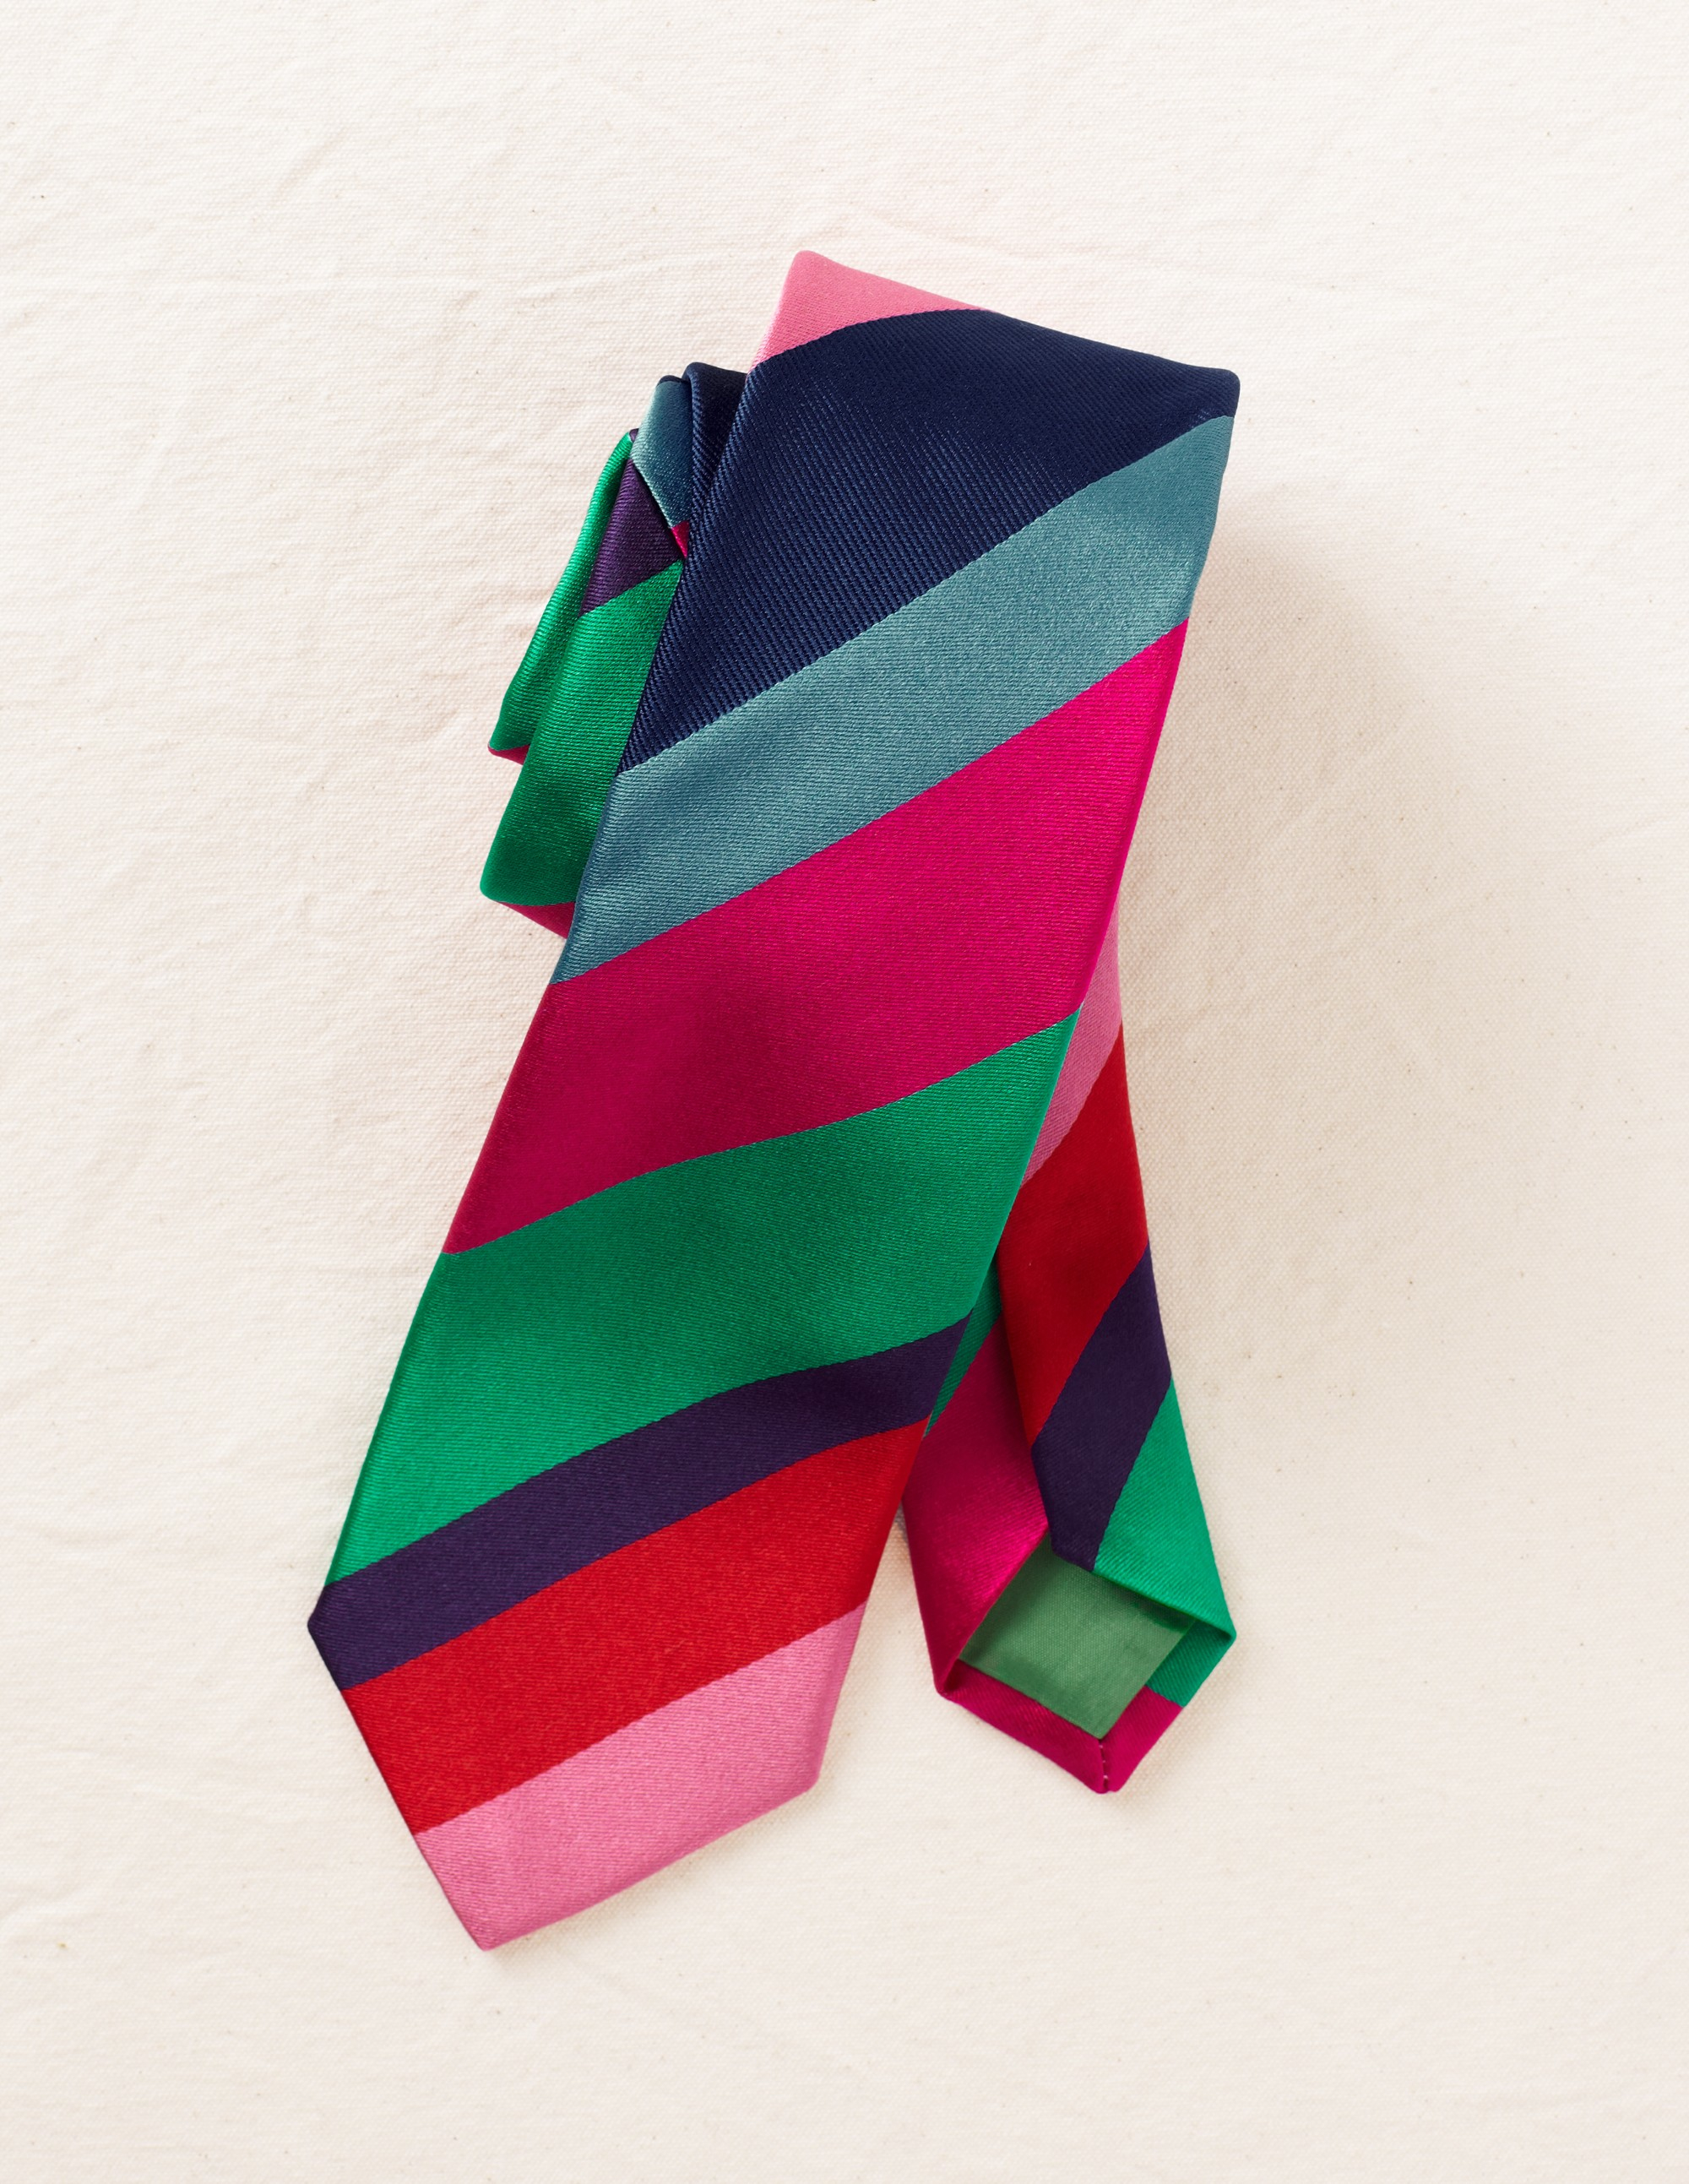 I love the colors on this modern tie